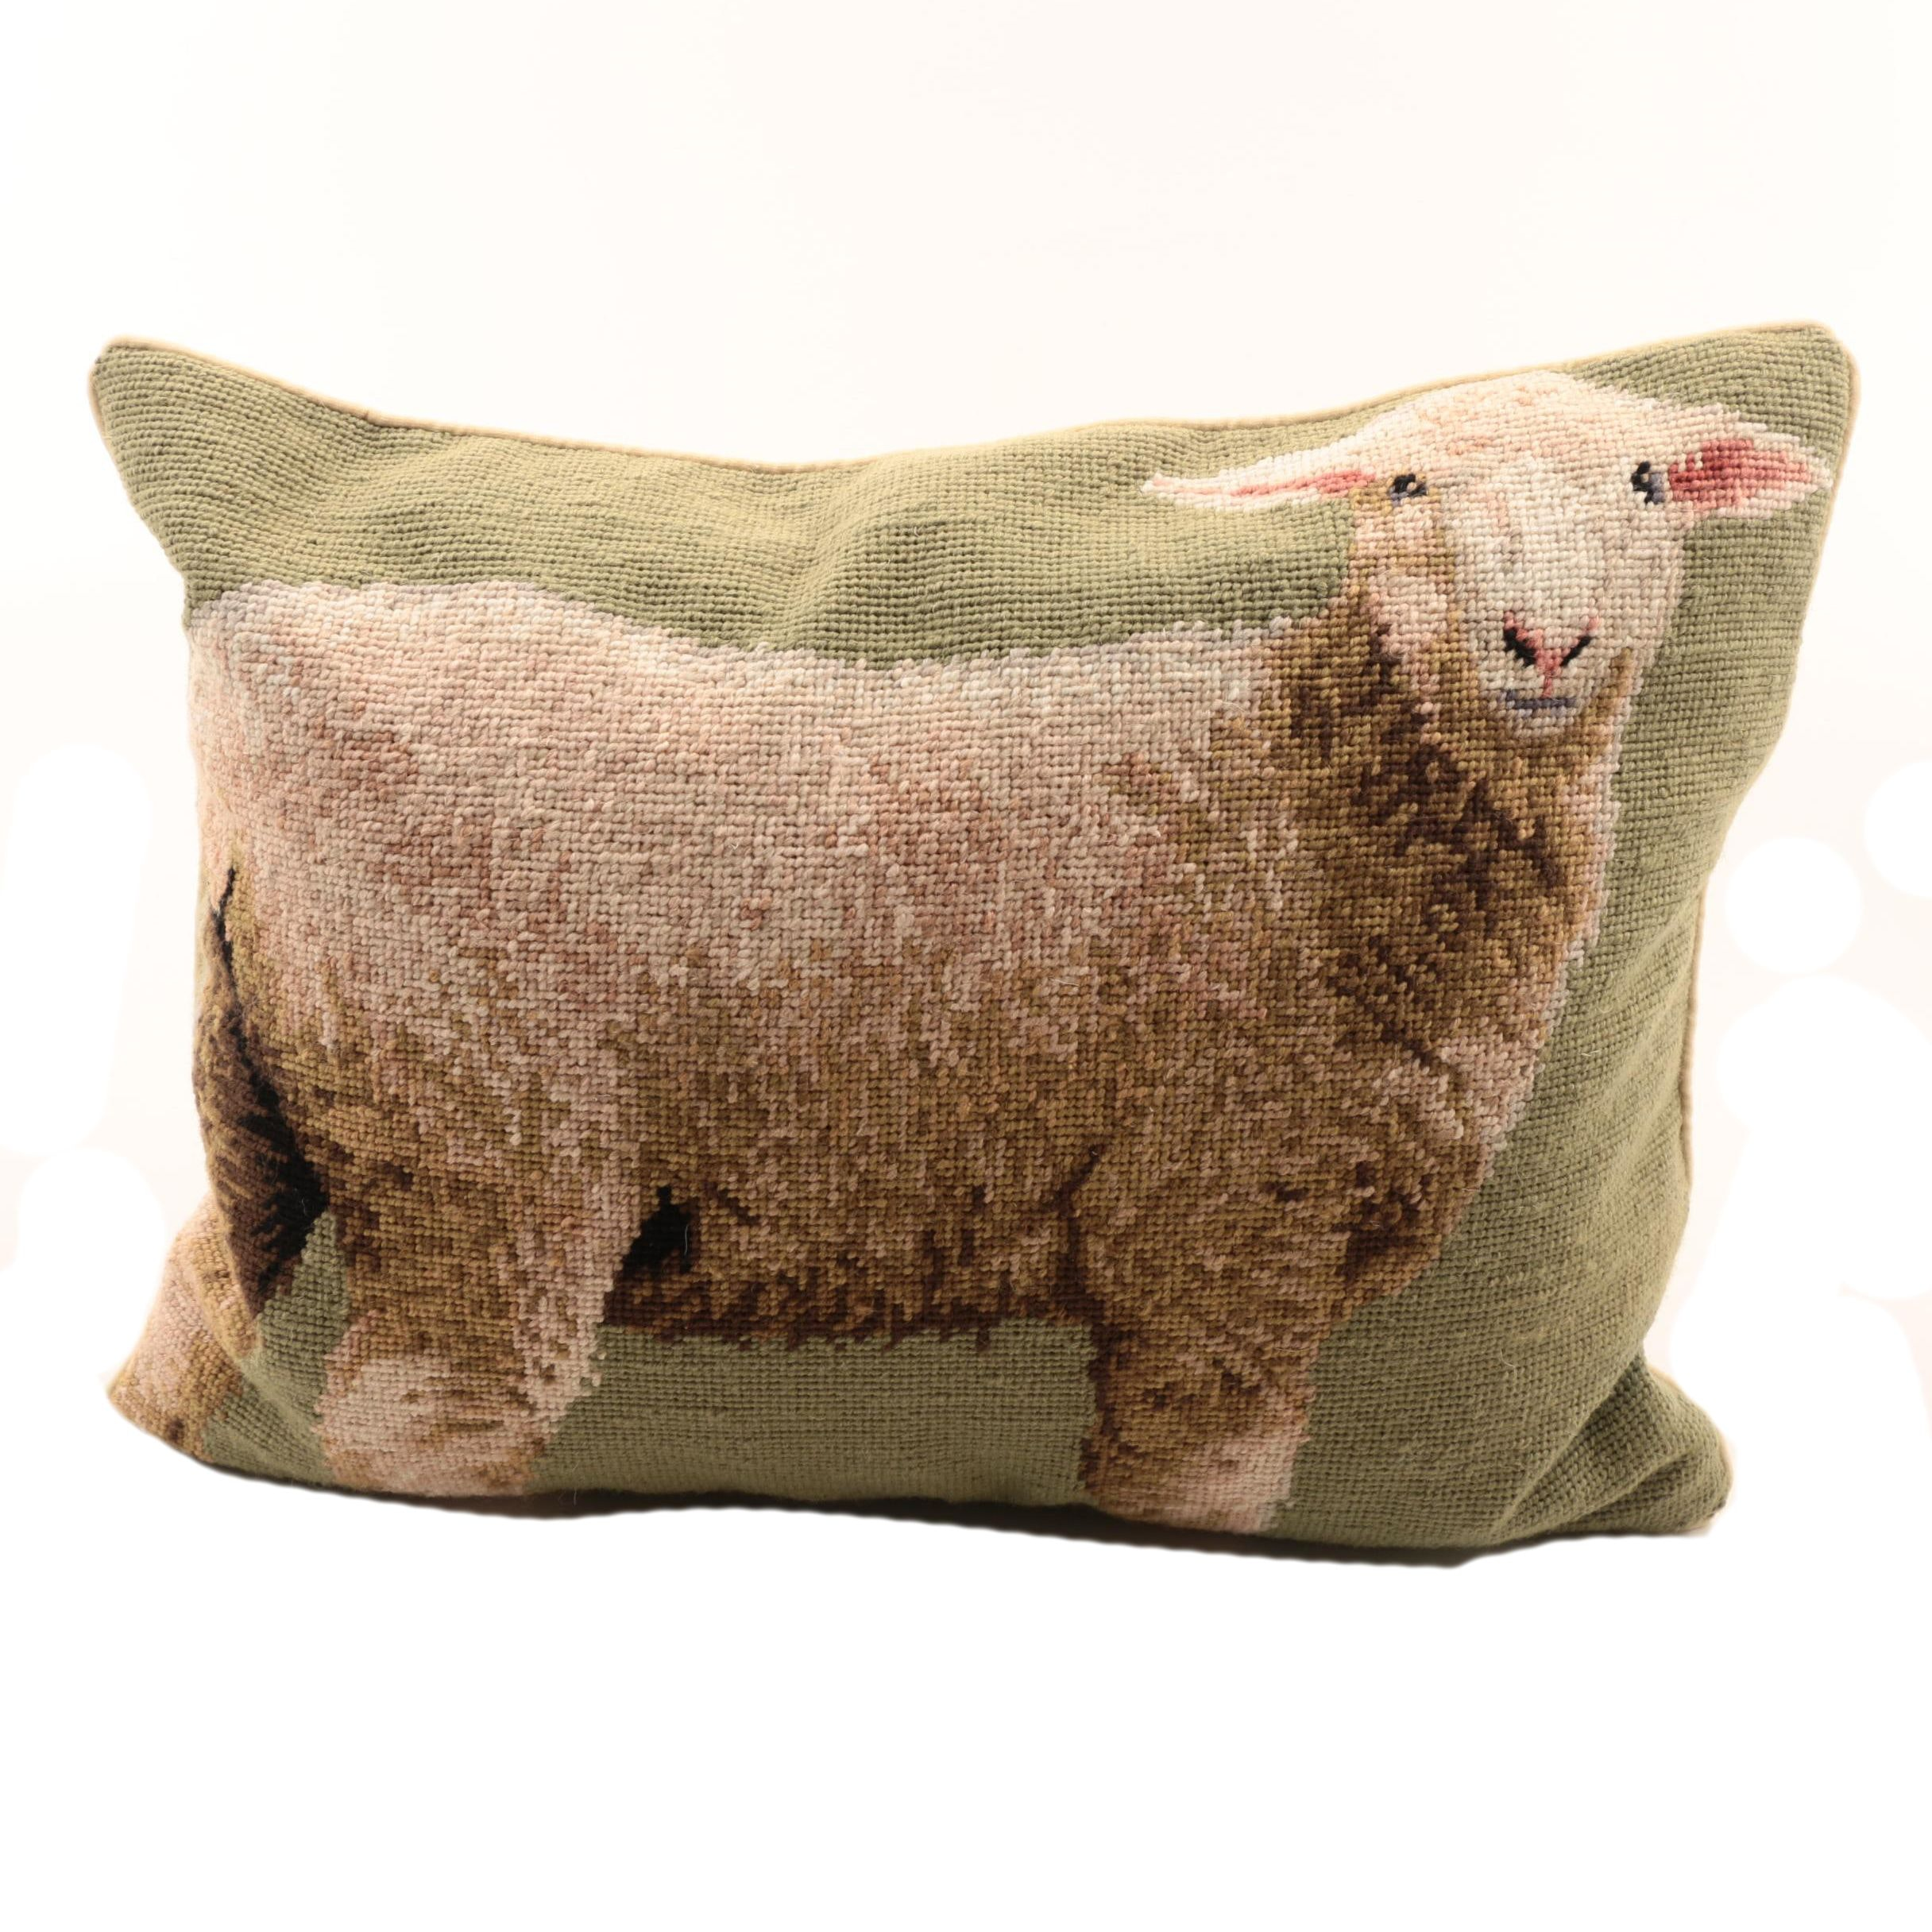 Needlepoint Sheep Pillow